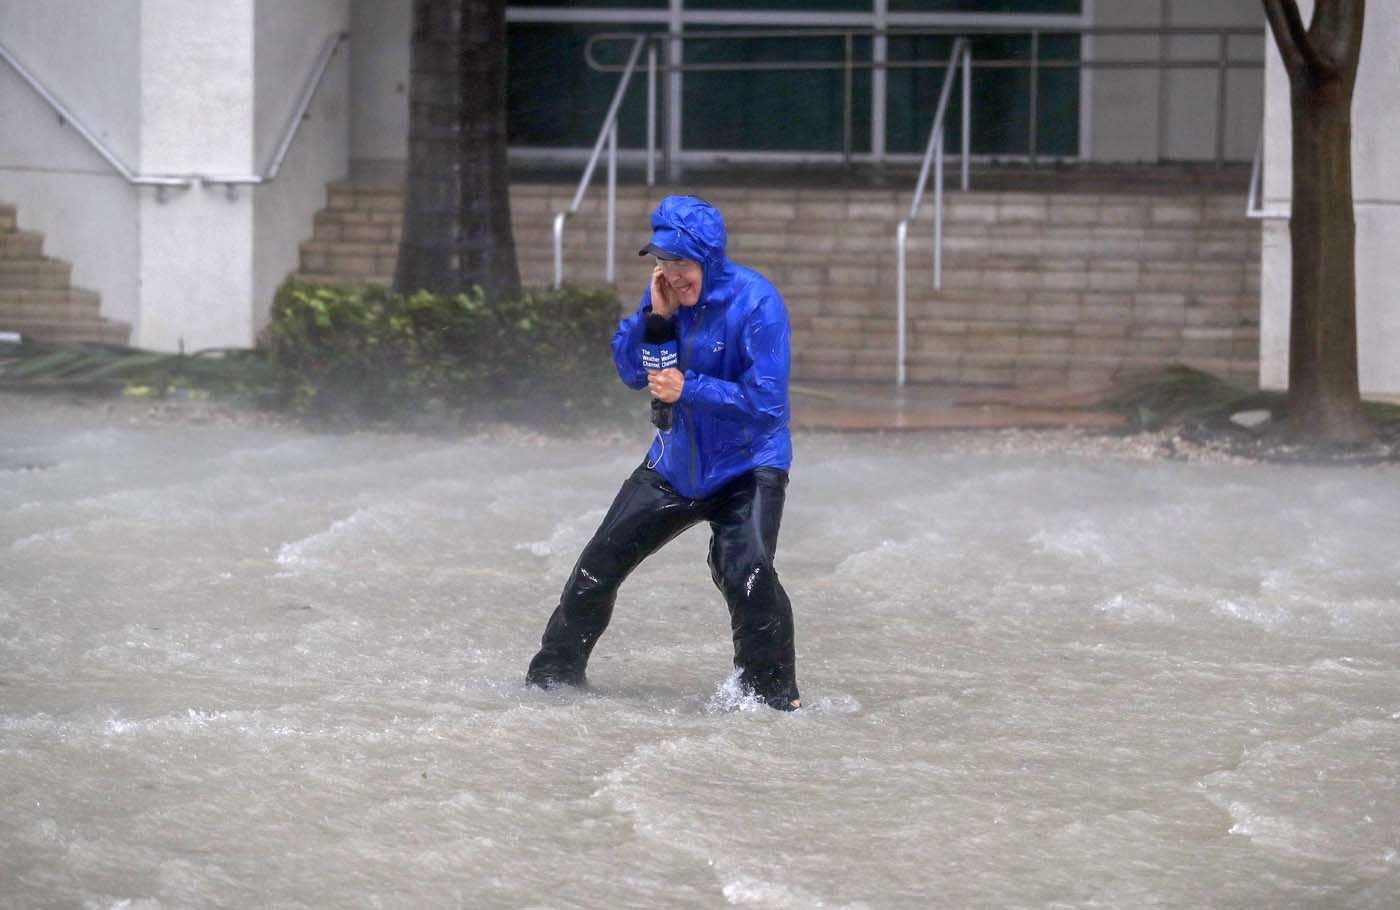 ELX01. Miami (United States), 10/09/2017.- Meteorologist Mike Seidel of the The Weather Channel fights fierce winds and flooded streets while reporting on the full effects of Hurricane Irma's strike in Miami, Florida, USA, 10 September 2017. Many areas are under mandatory evacuation orders as Irma approaches Florida. The National Hurricane Center has rated Irma as a Category 4 storm as the eye crosses the lower Florida Keys. (Estados Unidos) EFE/EPA/ERIK S. LESSER